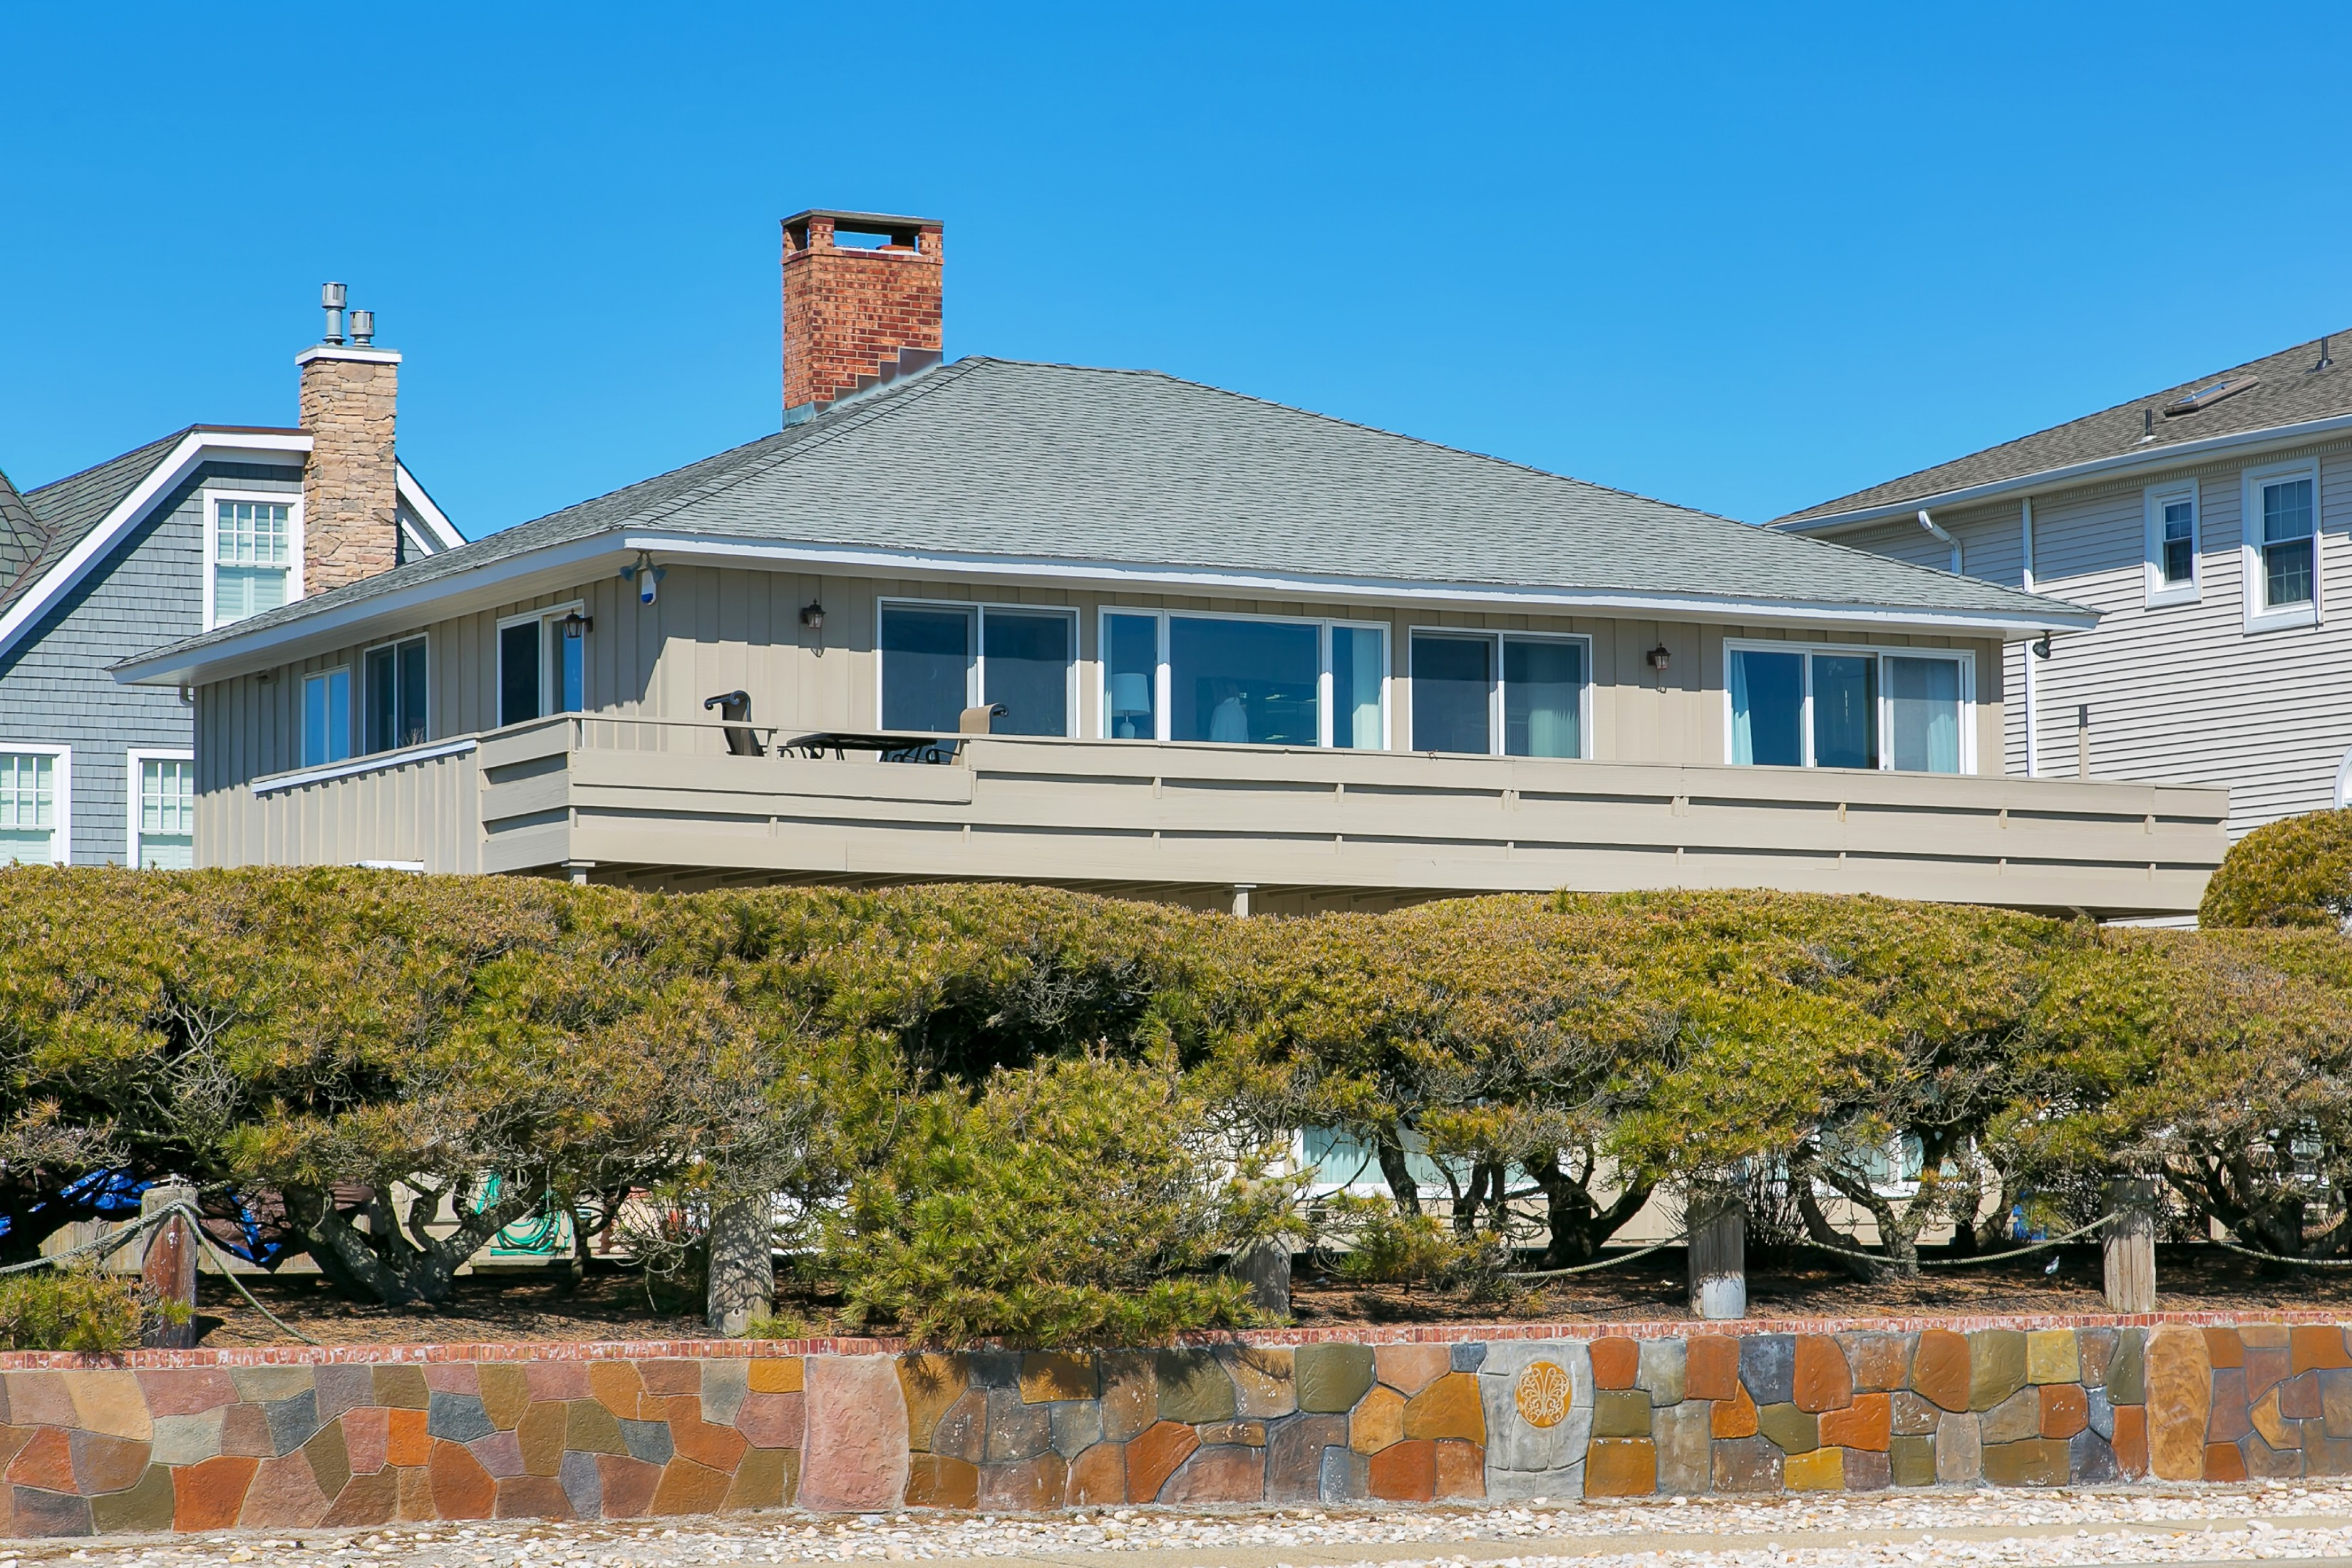 Single Family Home for Sale at Your Treasure Lies Here 209 Ocean Avenue Sea Girt, New Jersey 08750 United States